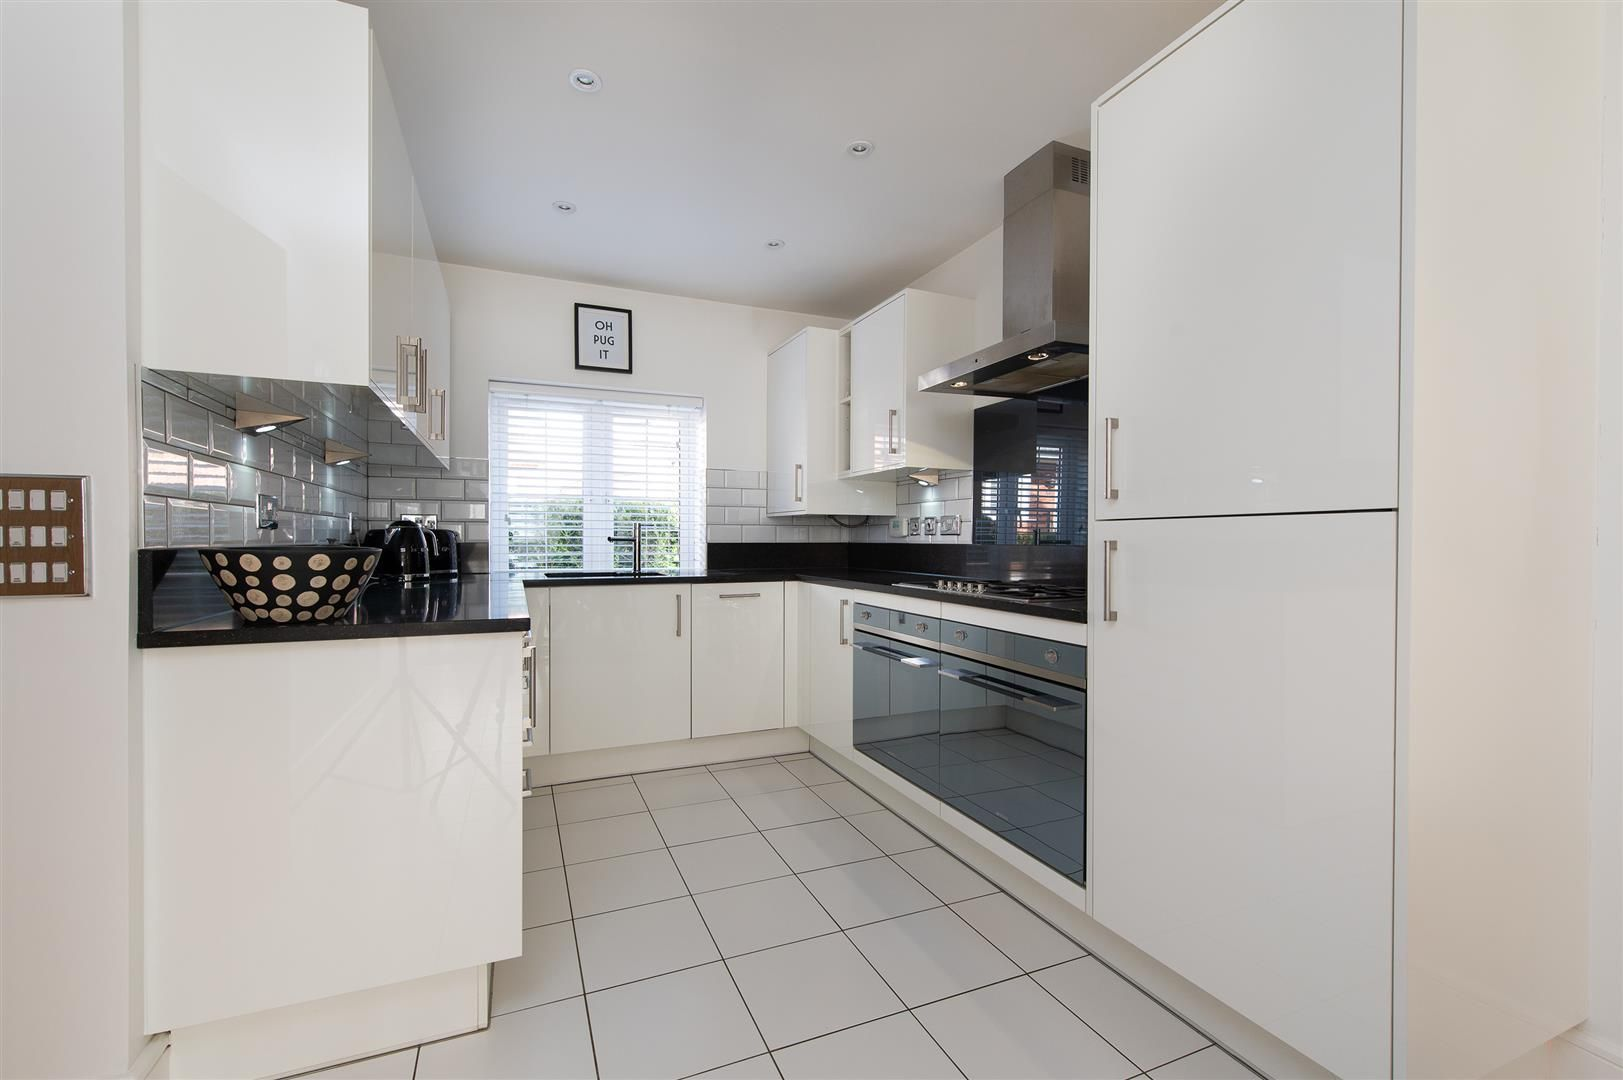 3 bed detached for sale in Hagley 9